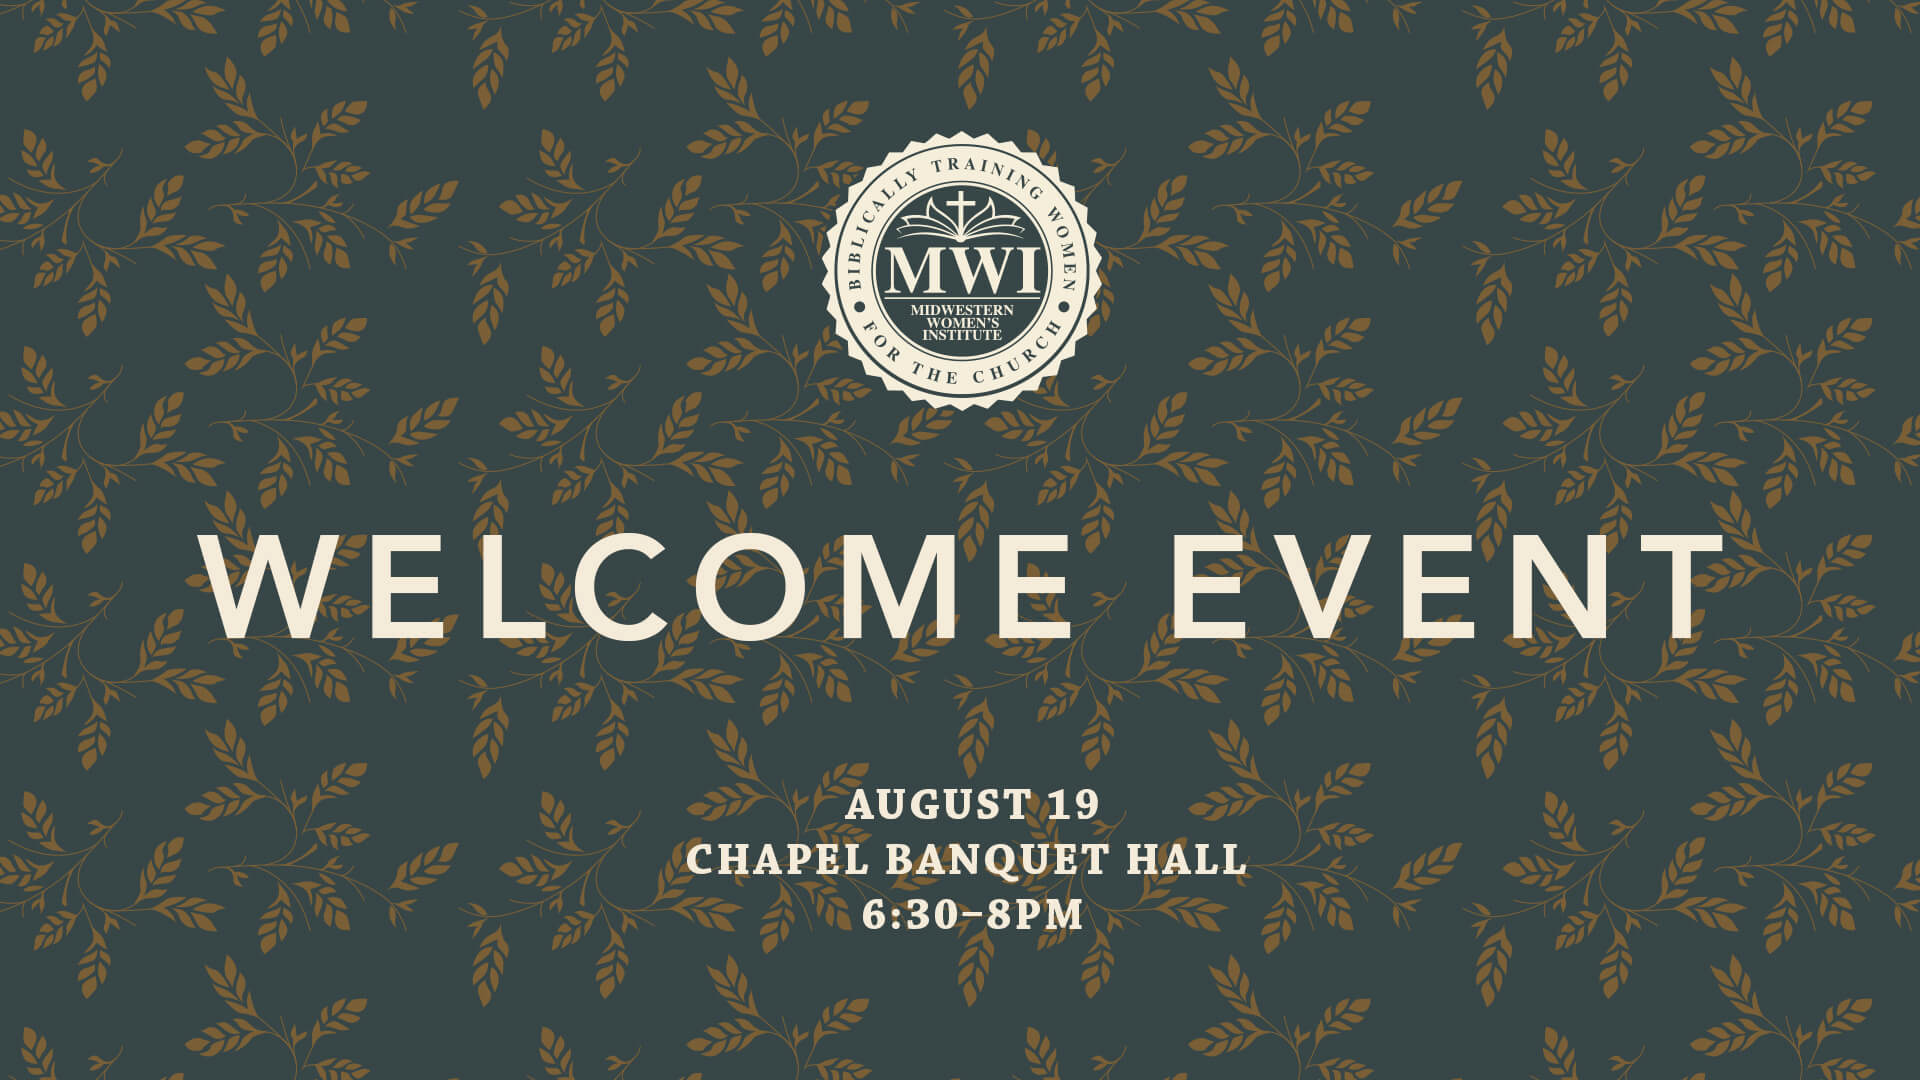 MWI Women's Welcome Event